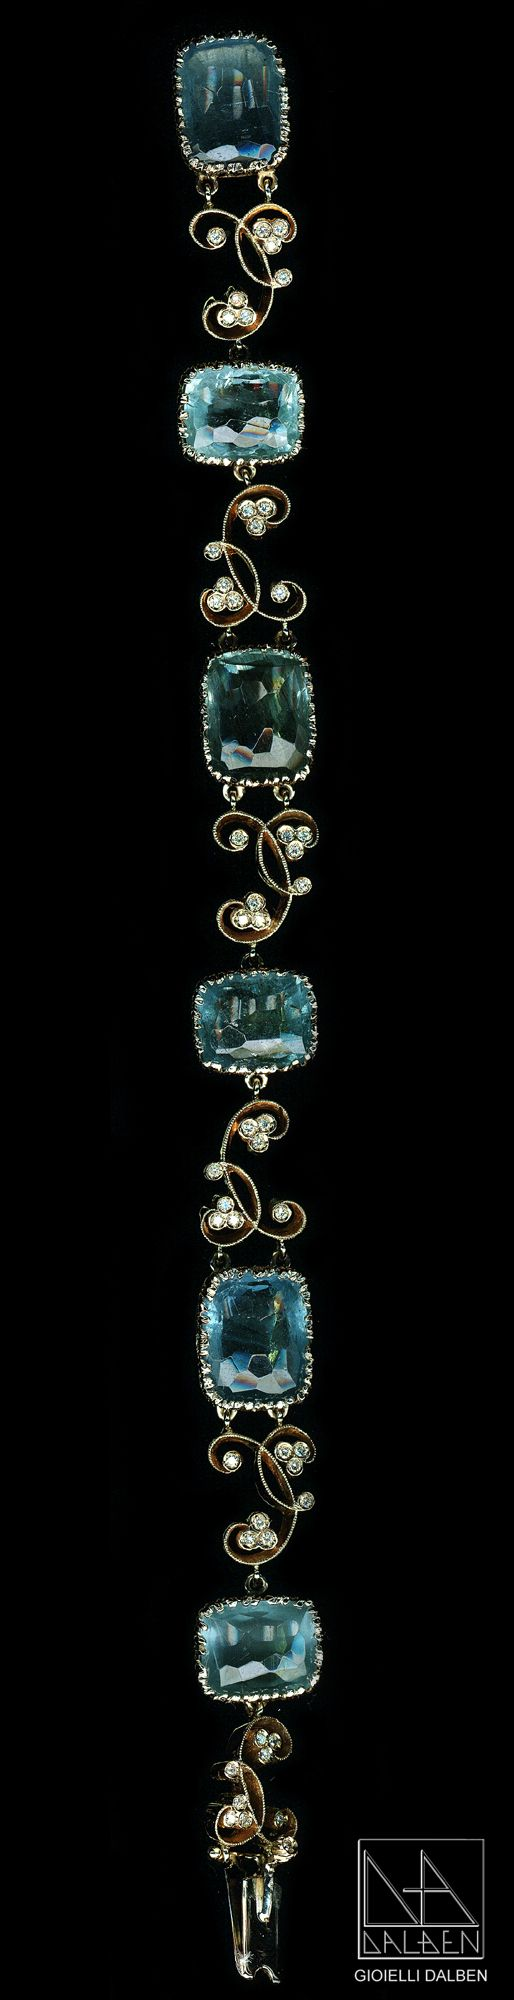 diamonds aquamarine bracelet - gioielli dalben - #jewelry #bracelet #diamonds: